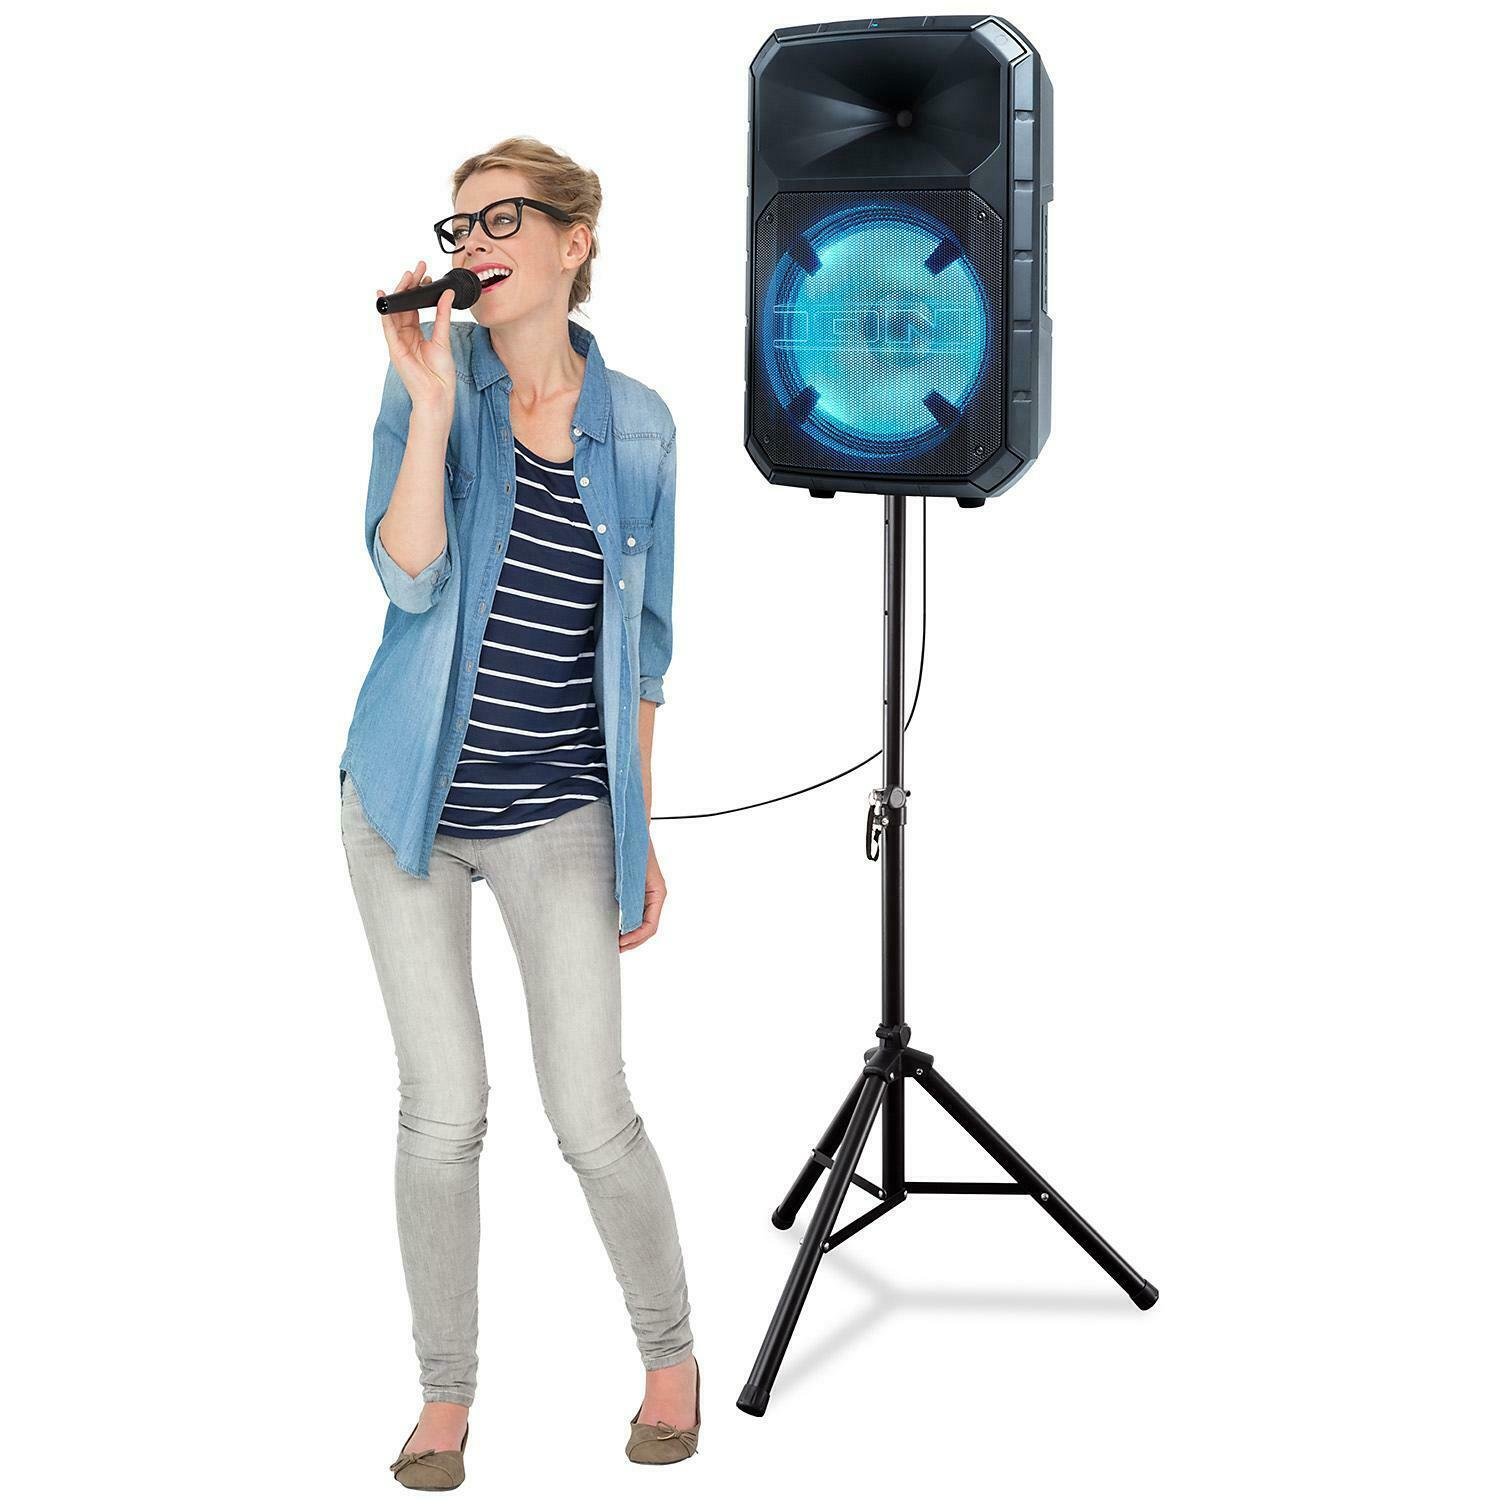 Total PA System Bluetooth Wireless Portable Speaker LED Lights ION Audio Plus image 5